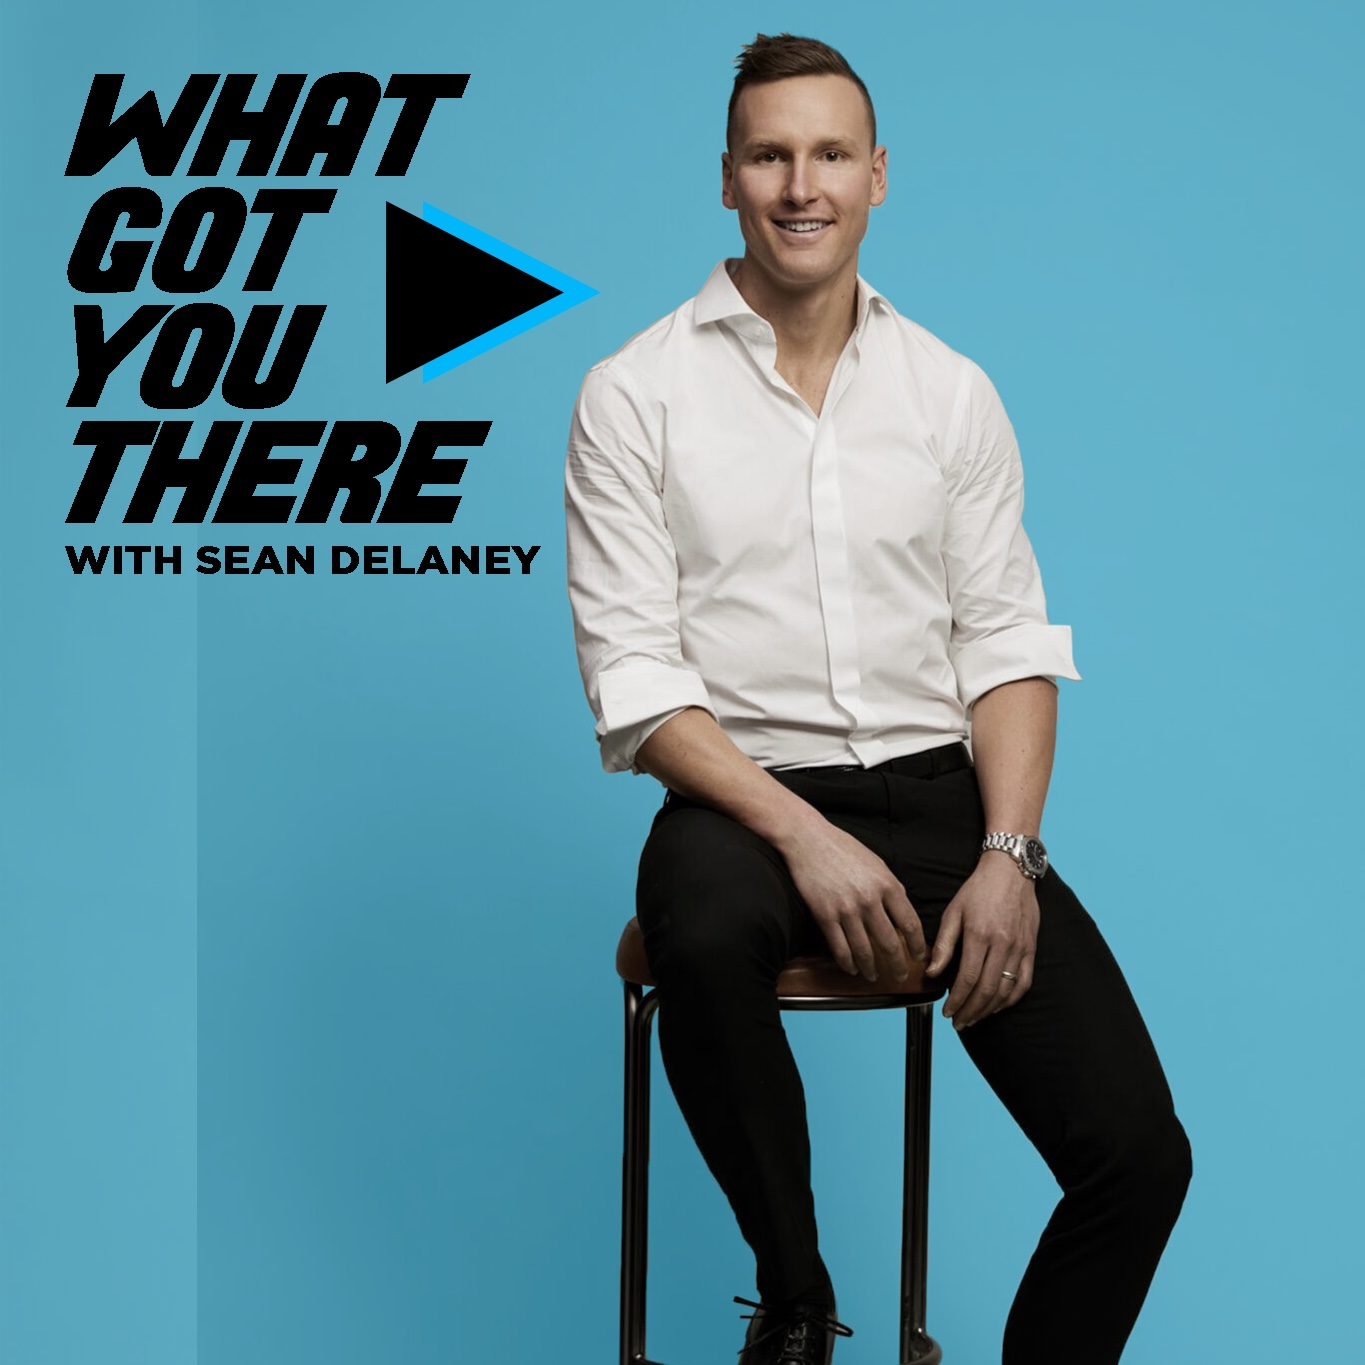 What Got You There with Sean DeLaney show art